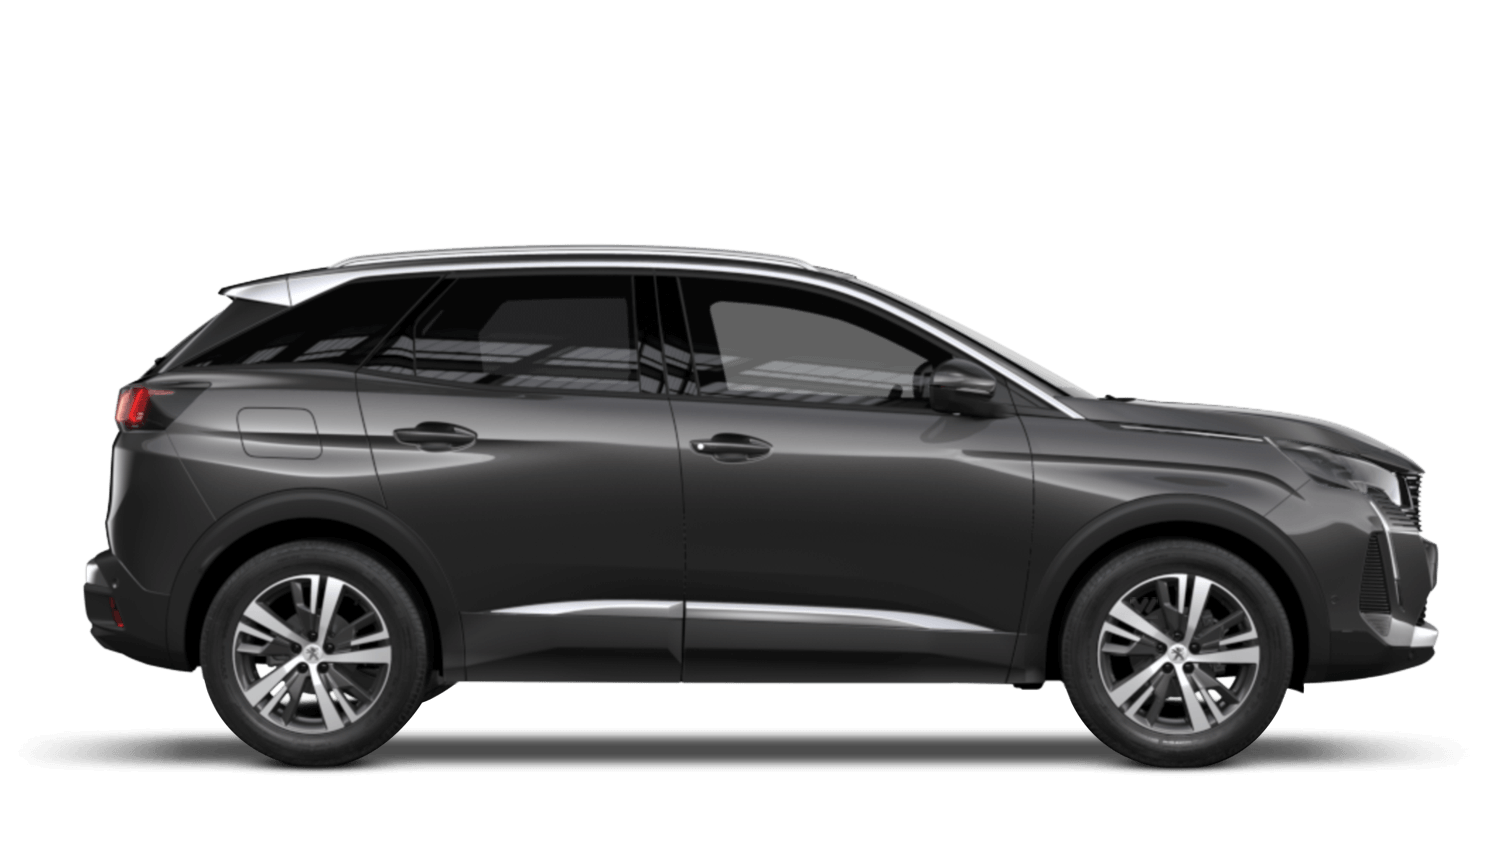 Nimbus Grey New Peugeot 3008 SUV